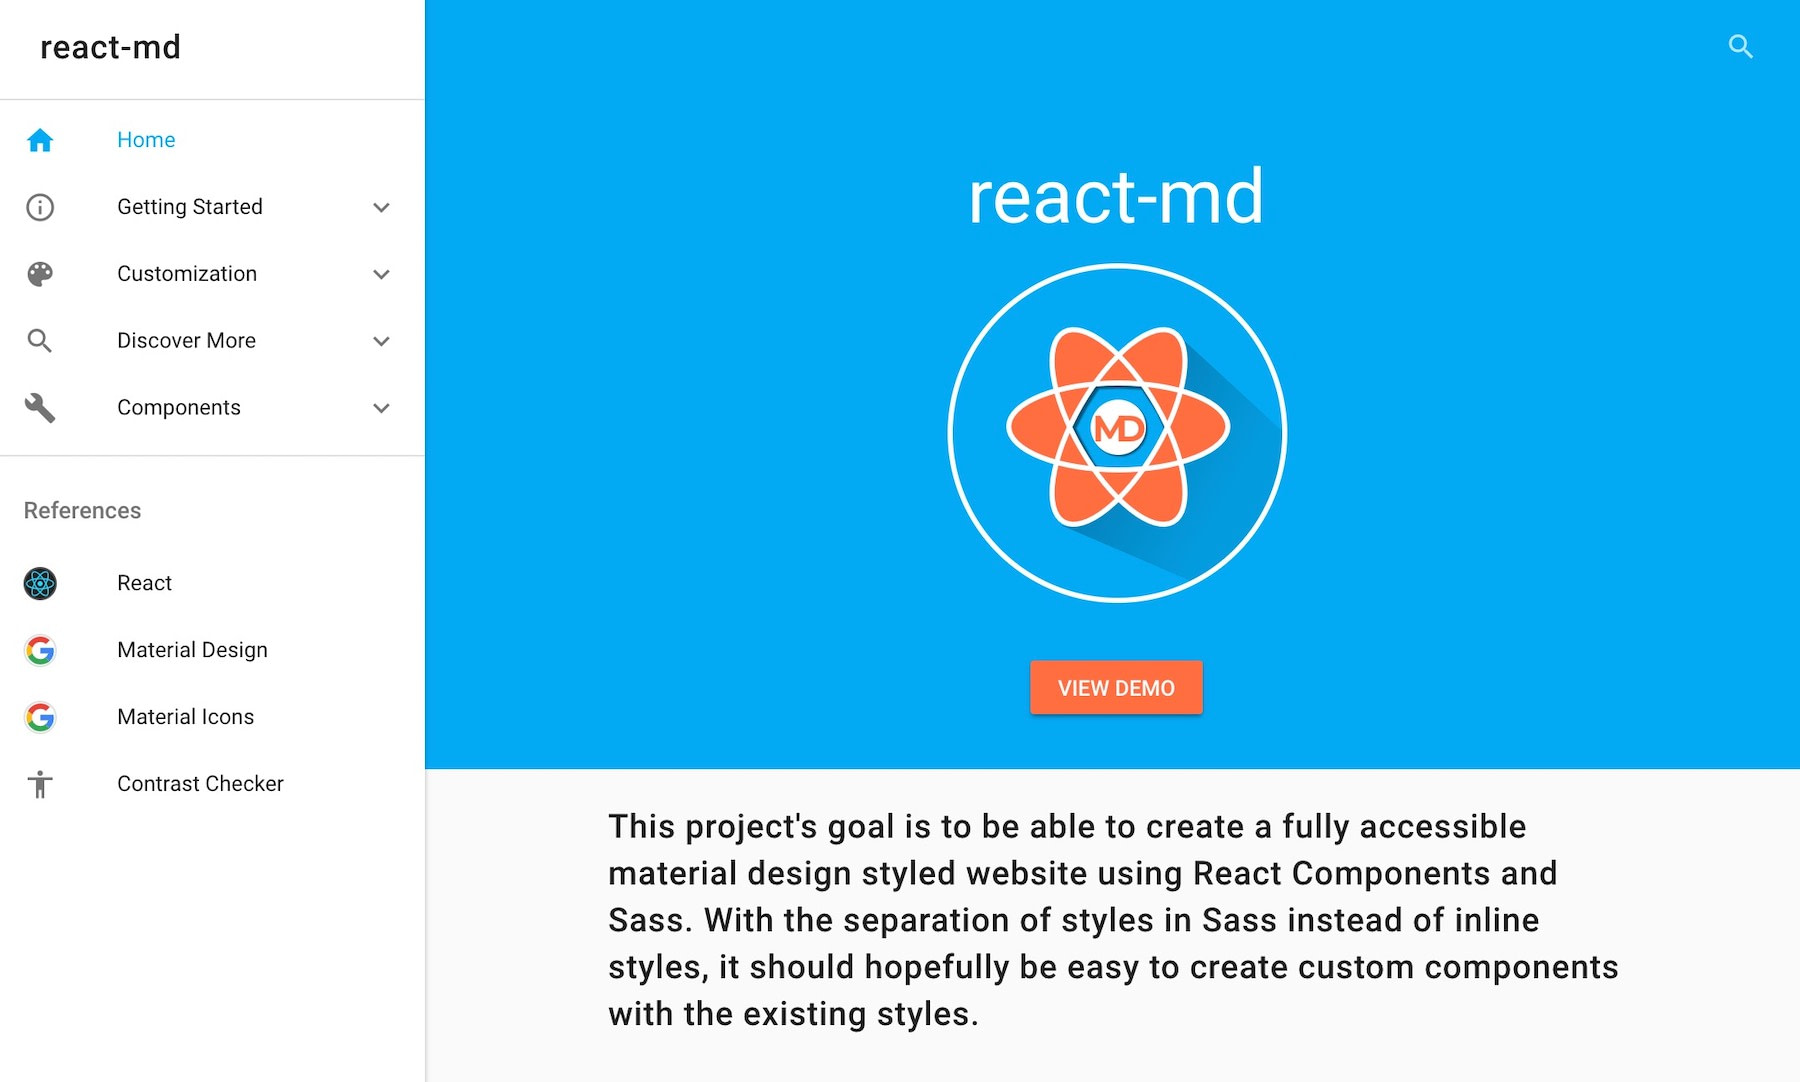 react-md